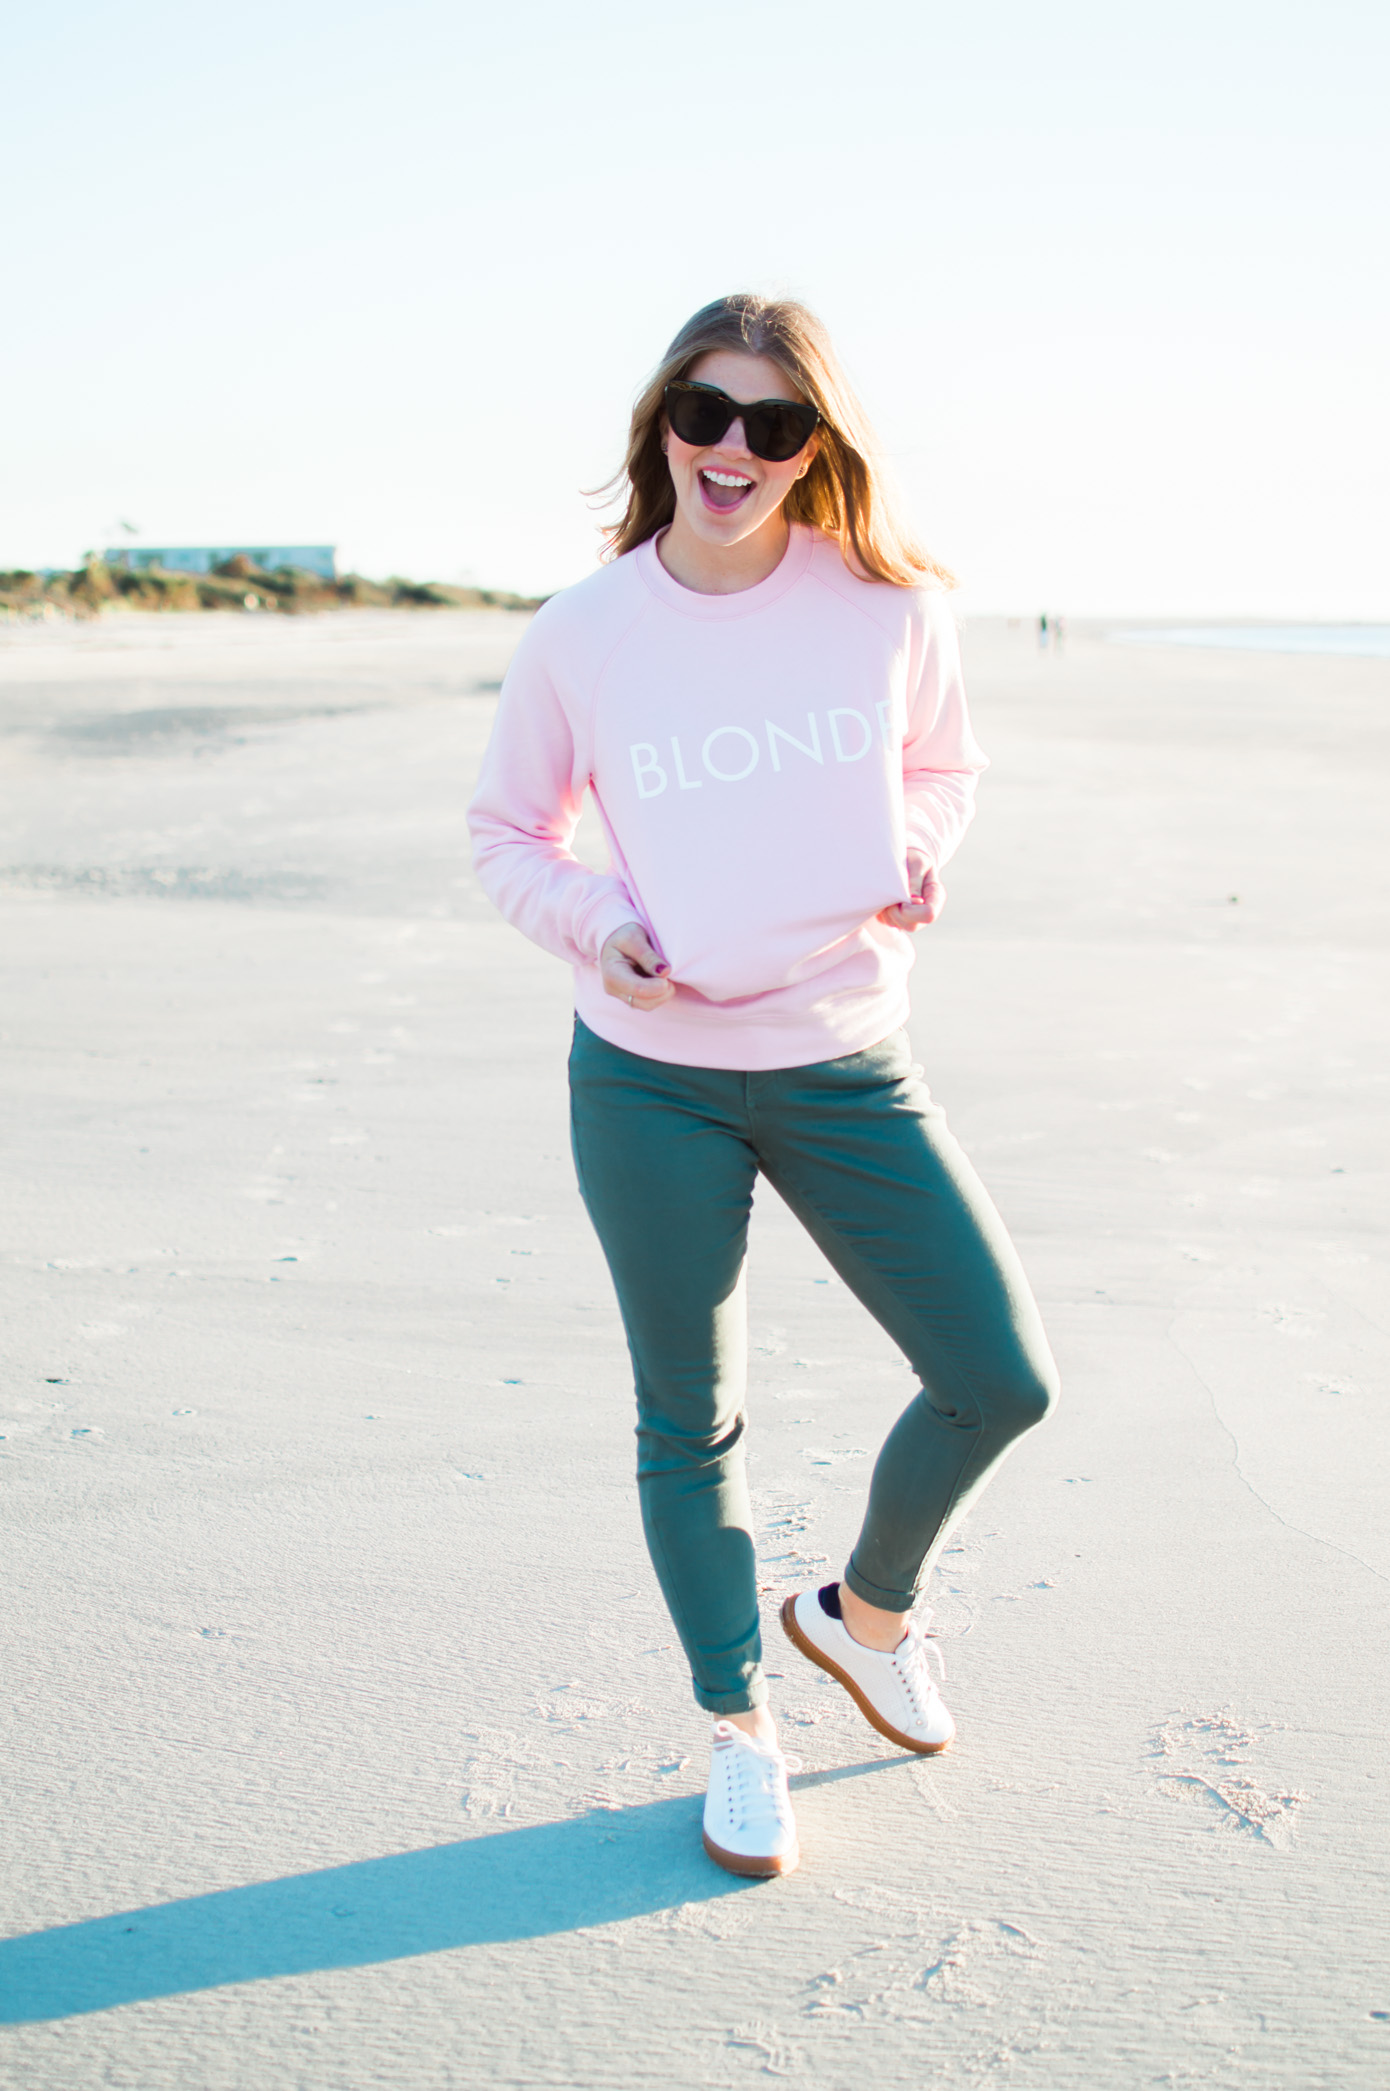 Blonde Sweatshirt | Graphic Sweatshirt | Christmas Gift for Your Bestie | Louella Reese Life & Style Blog